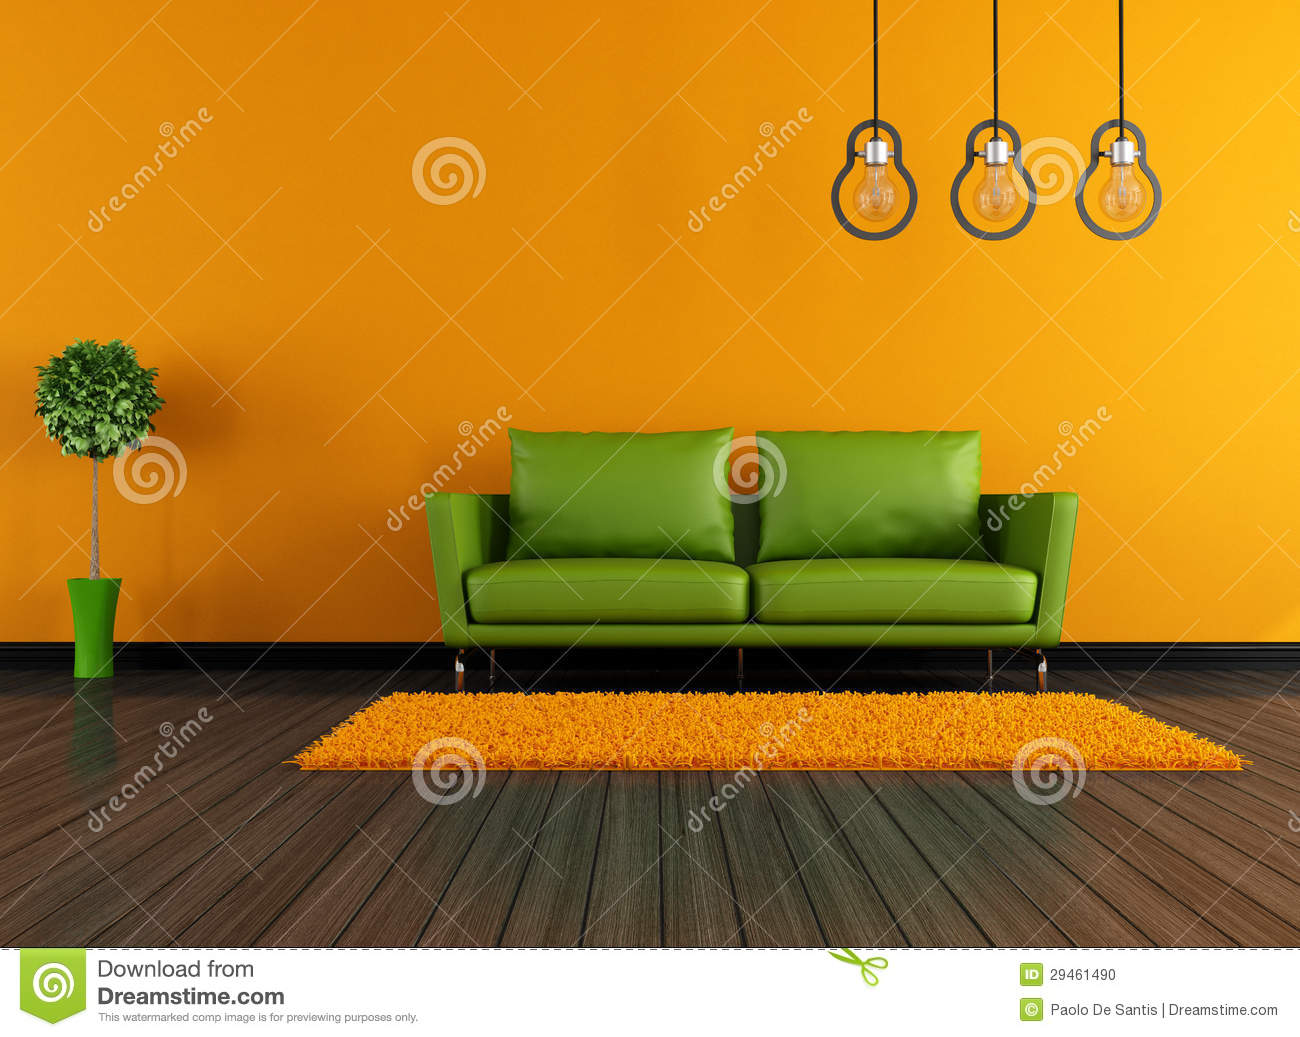 Salon Vert Et Orange Moderne Illustration Stock - Illustration du ...